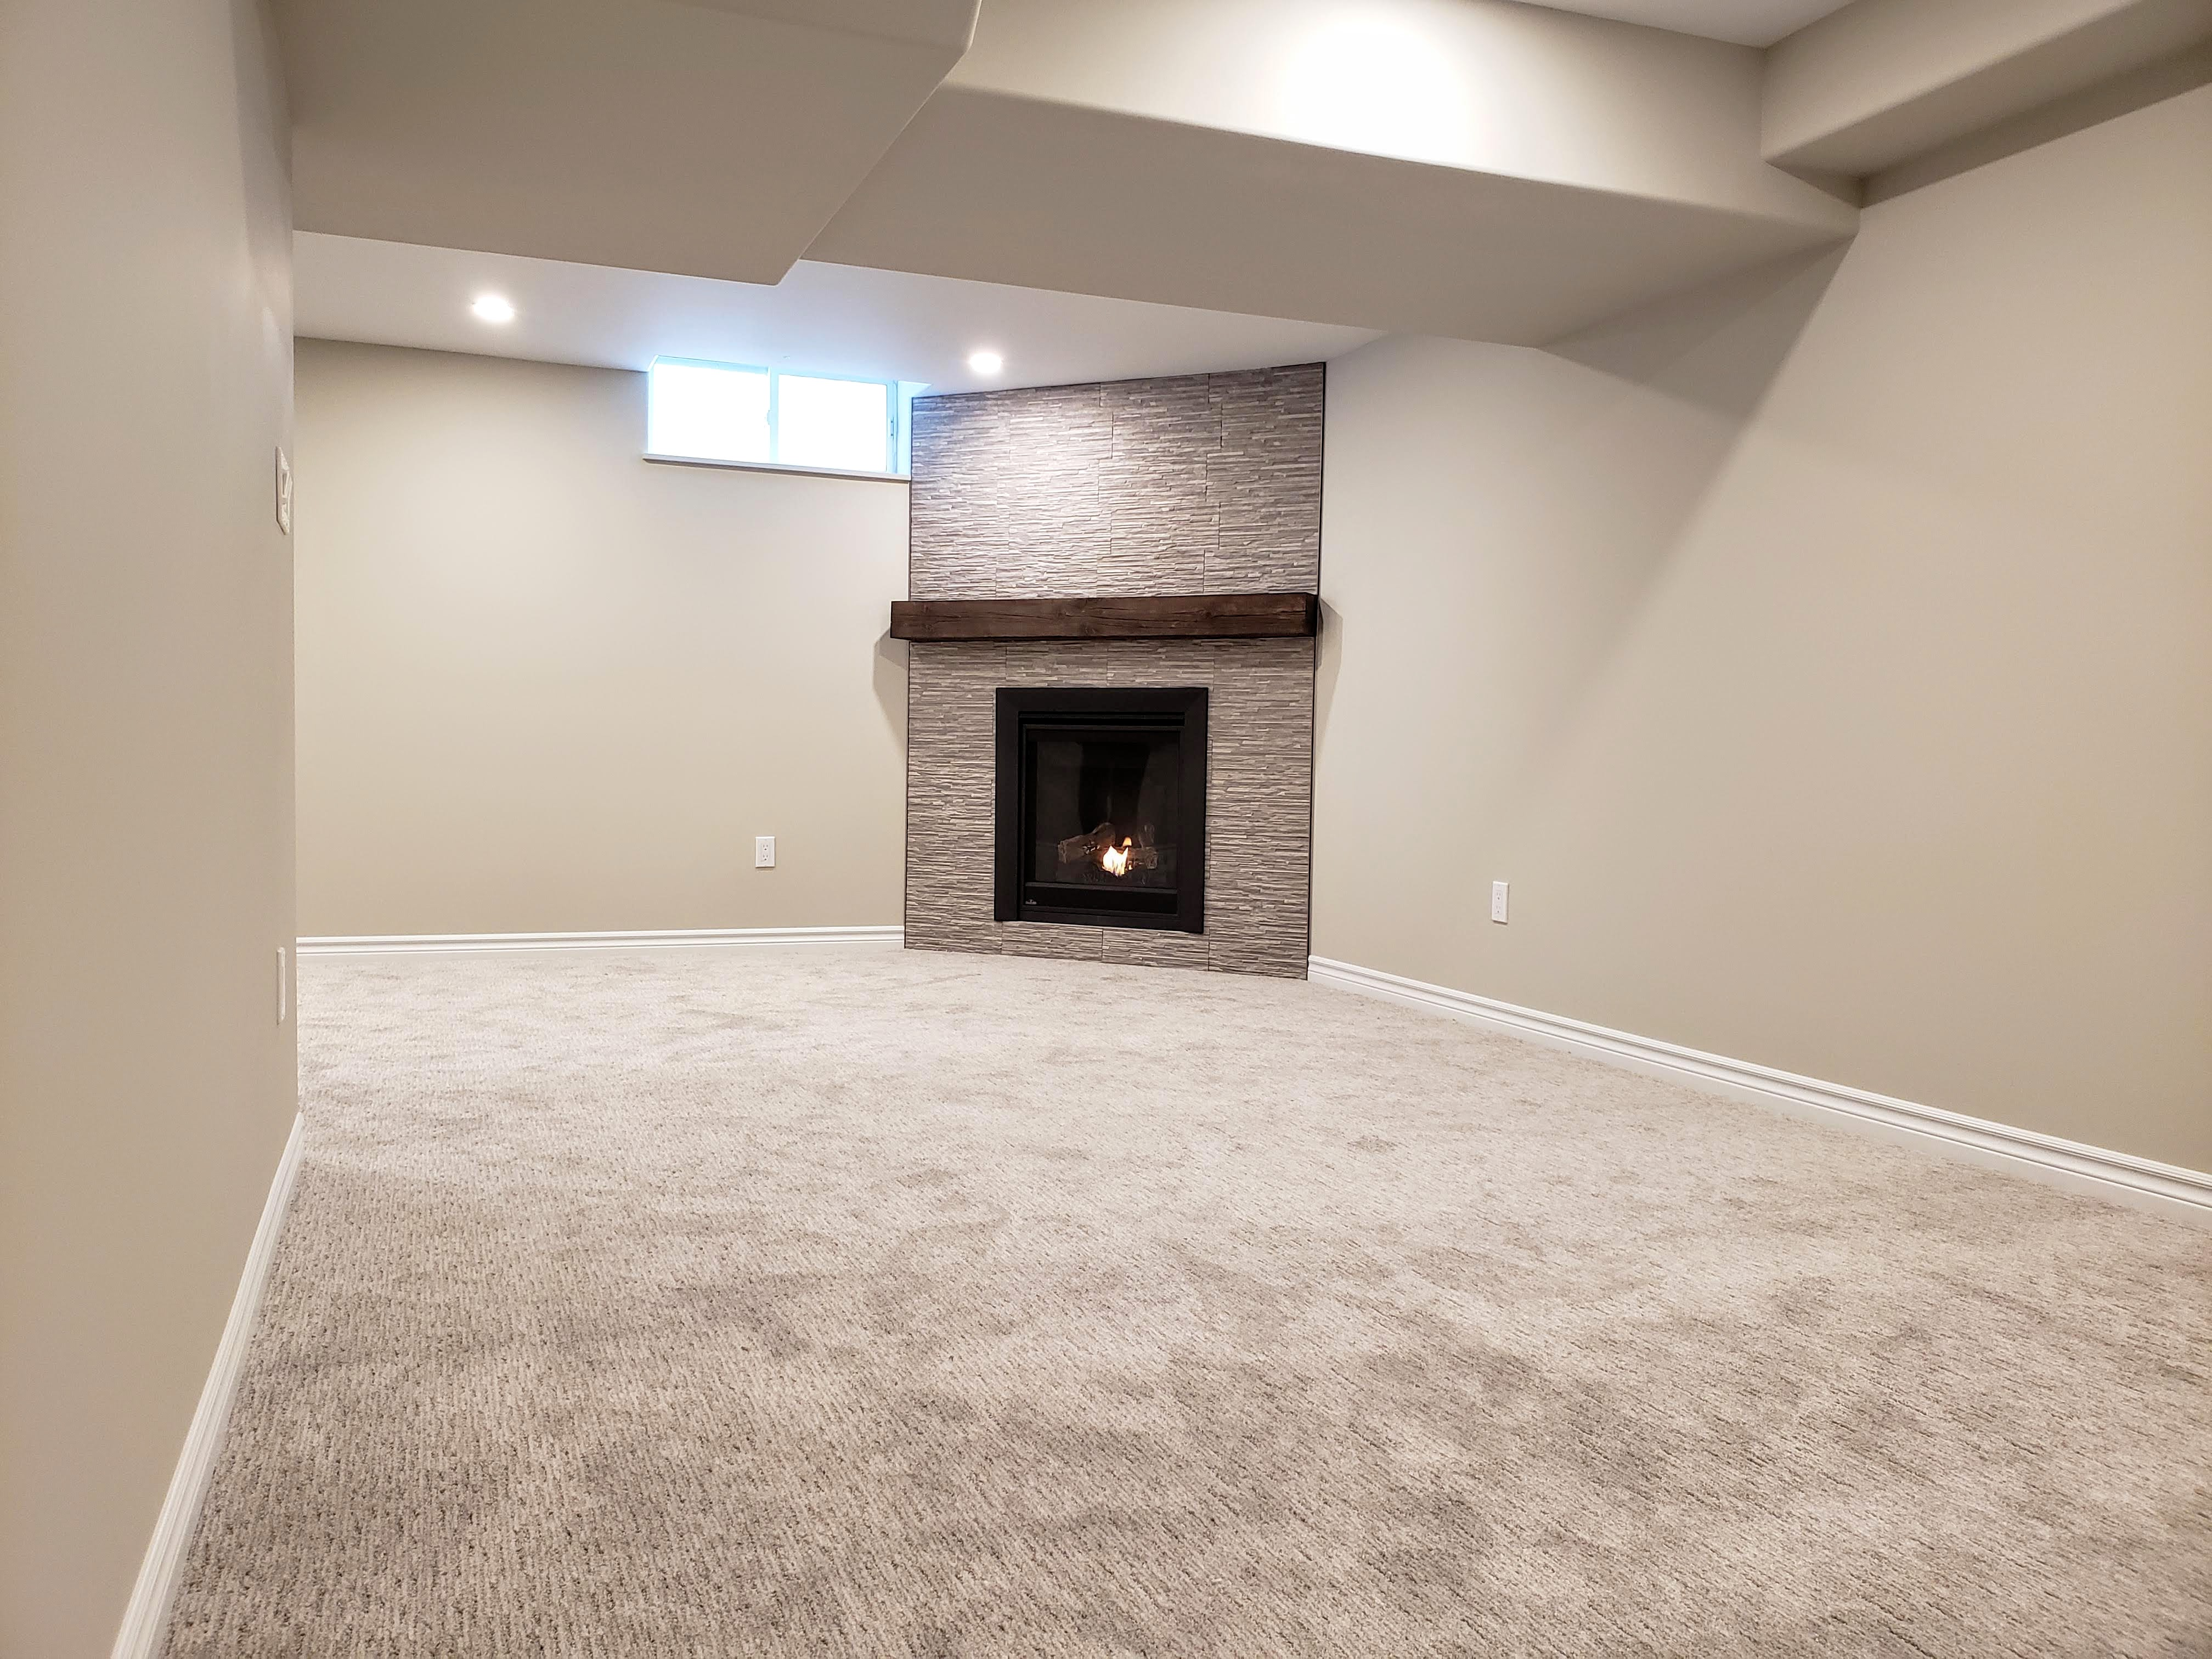 Look-out basement renovation by Germano Creative Interior Contracting Ltd.